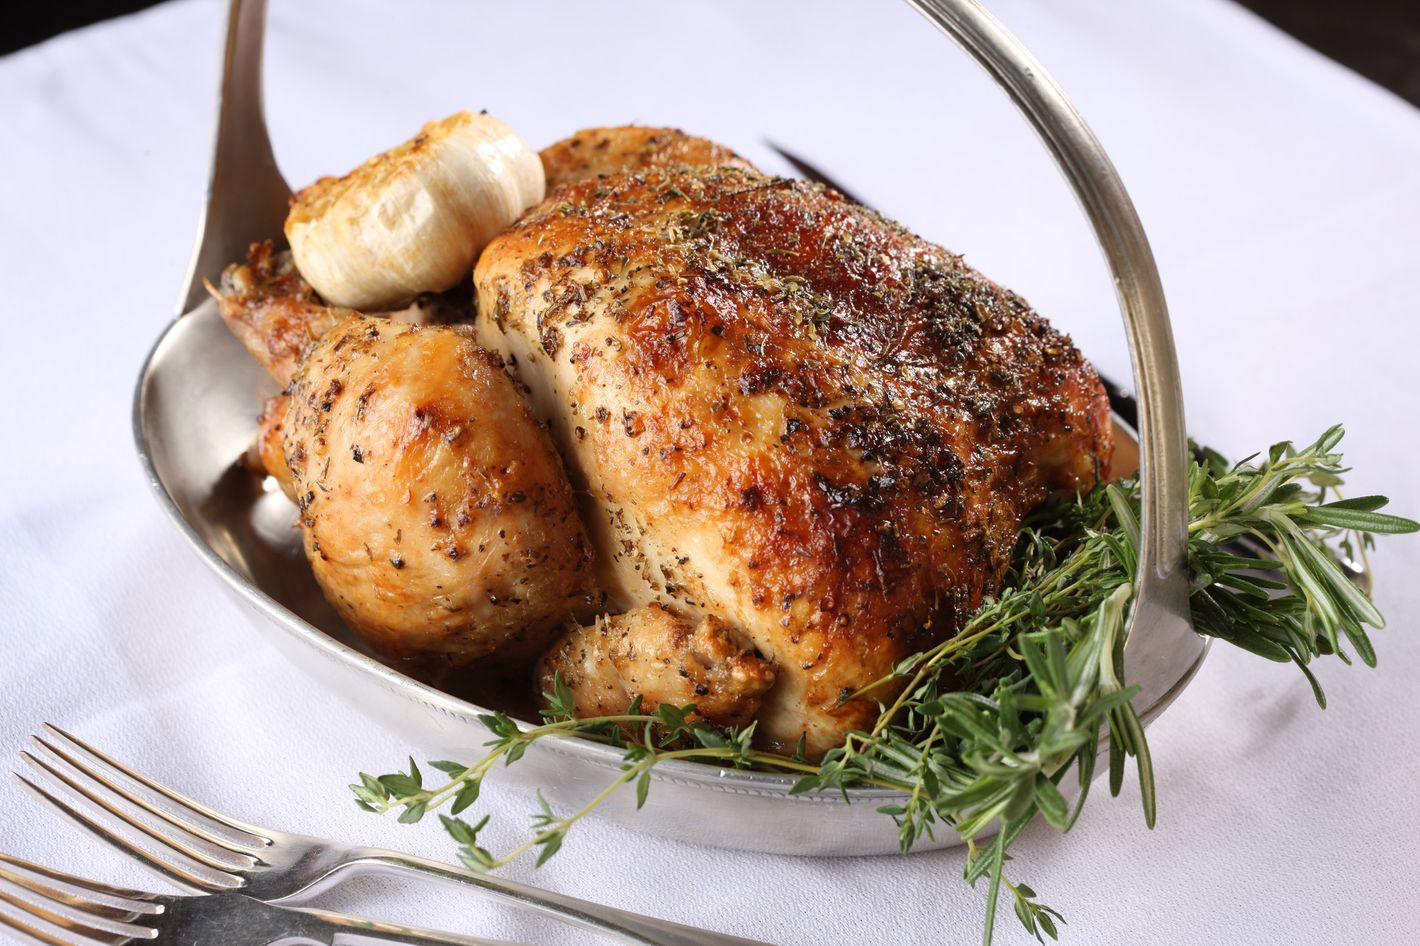 One of the Pennsylvania-bred birds served at Rotisserie Georgette.